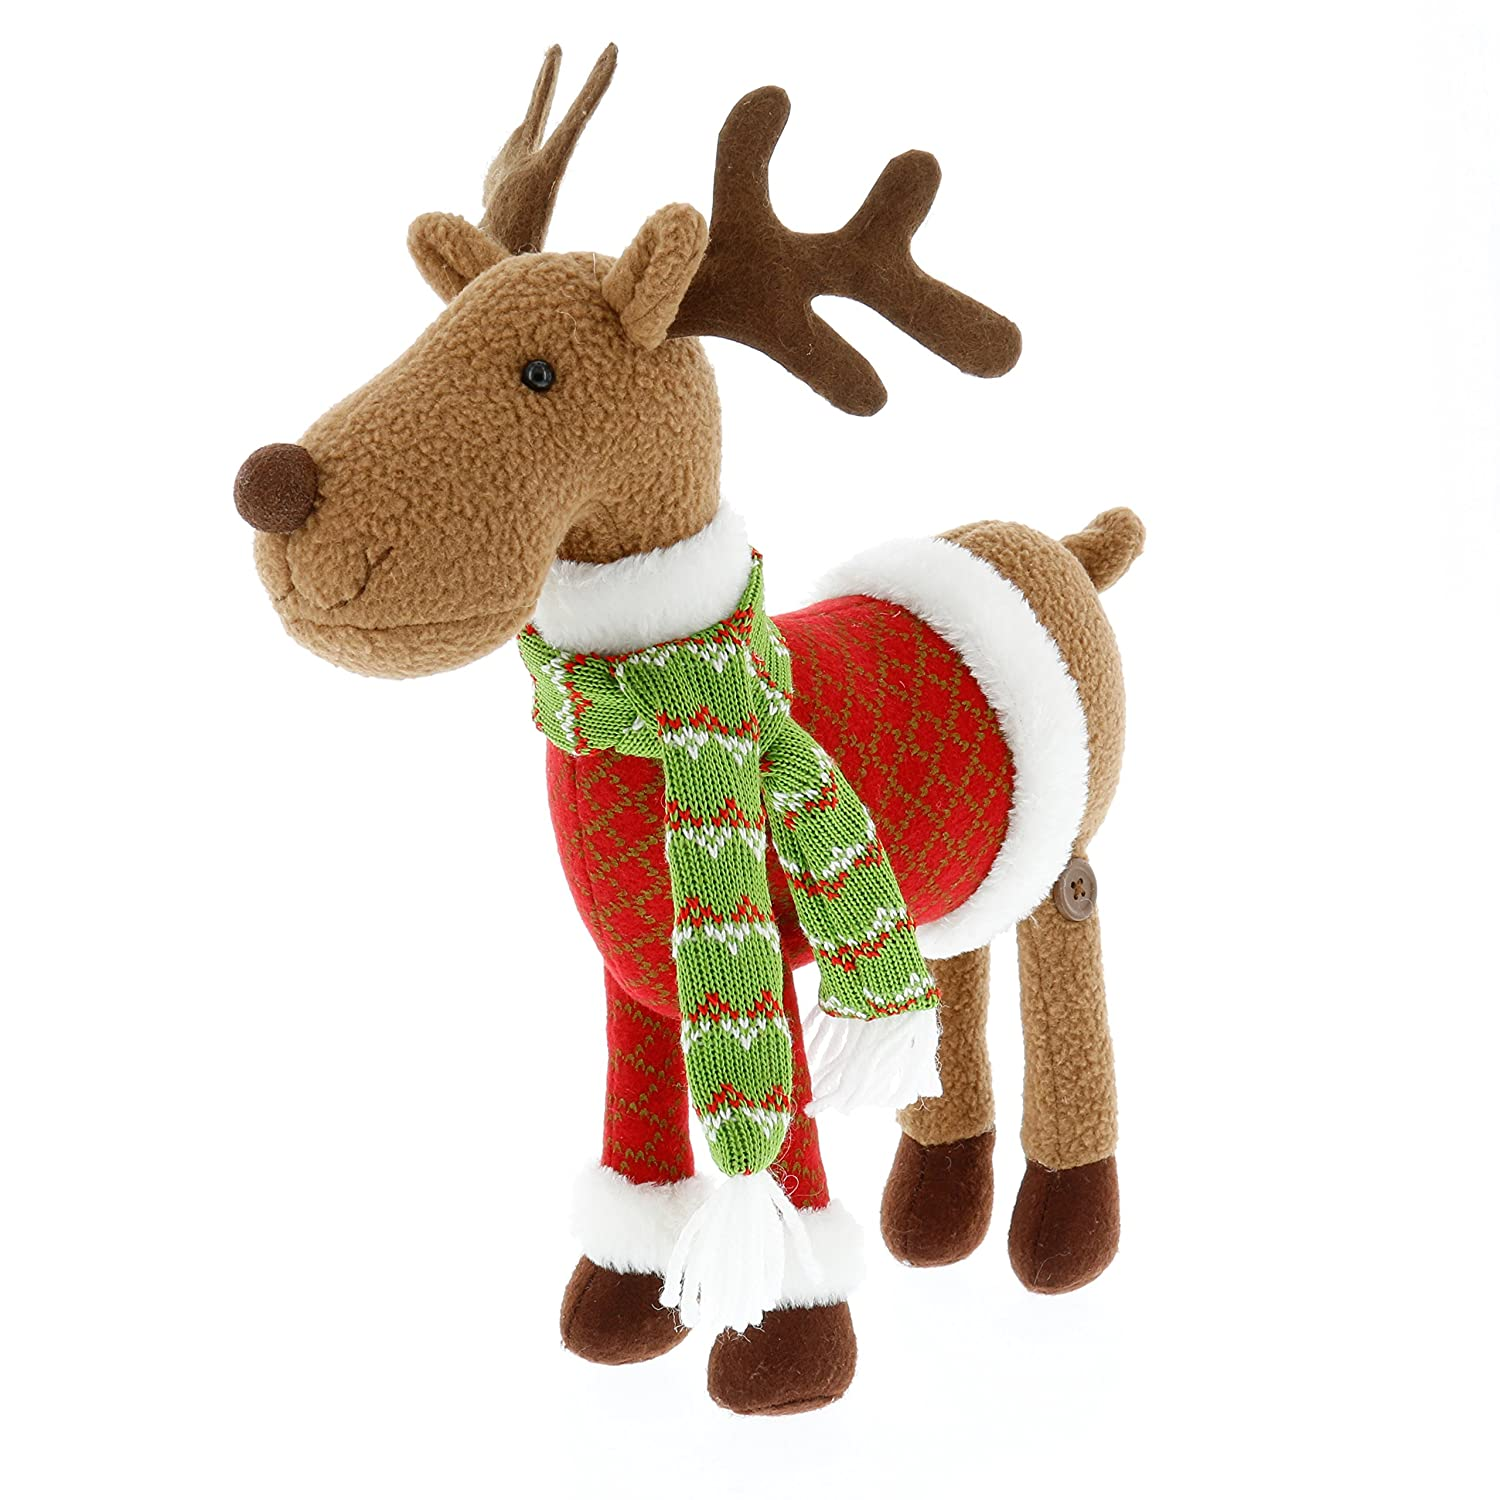 SCS Direct Reindeer Plush 12 Christmas Pet Stuffed Doll Great with Your Holiday Elf